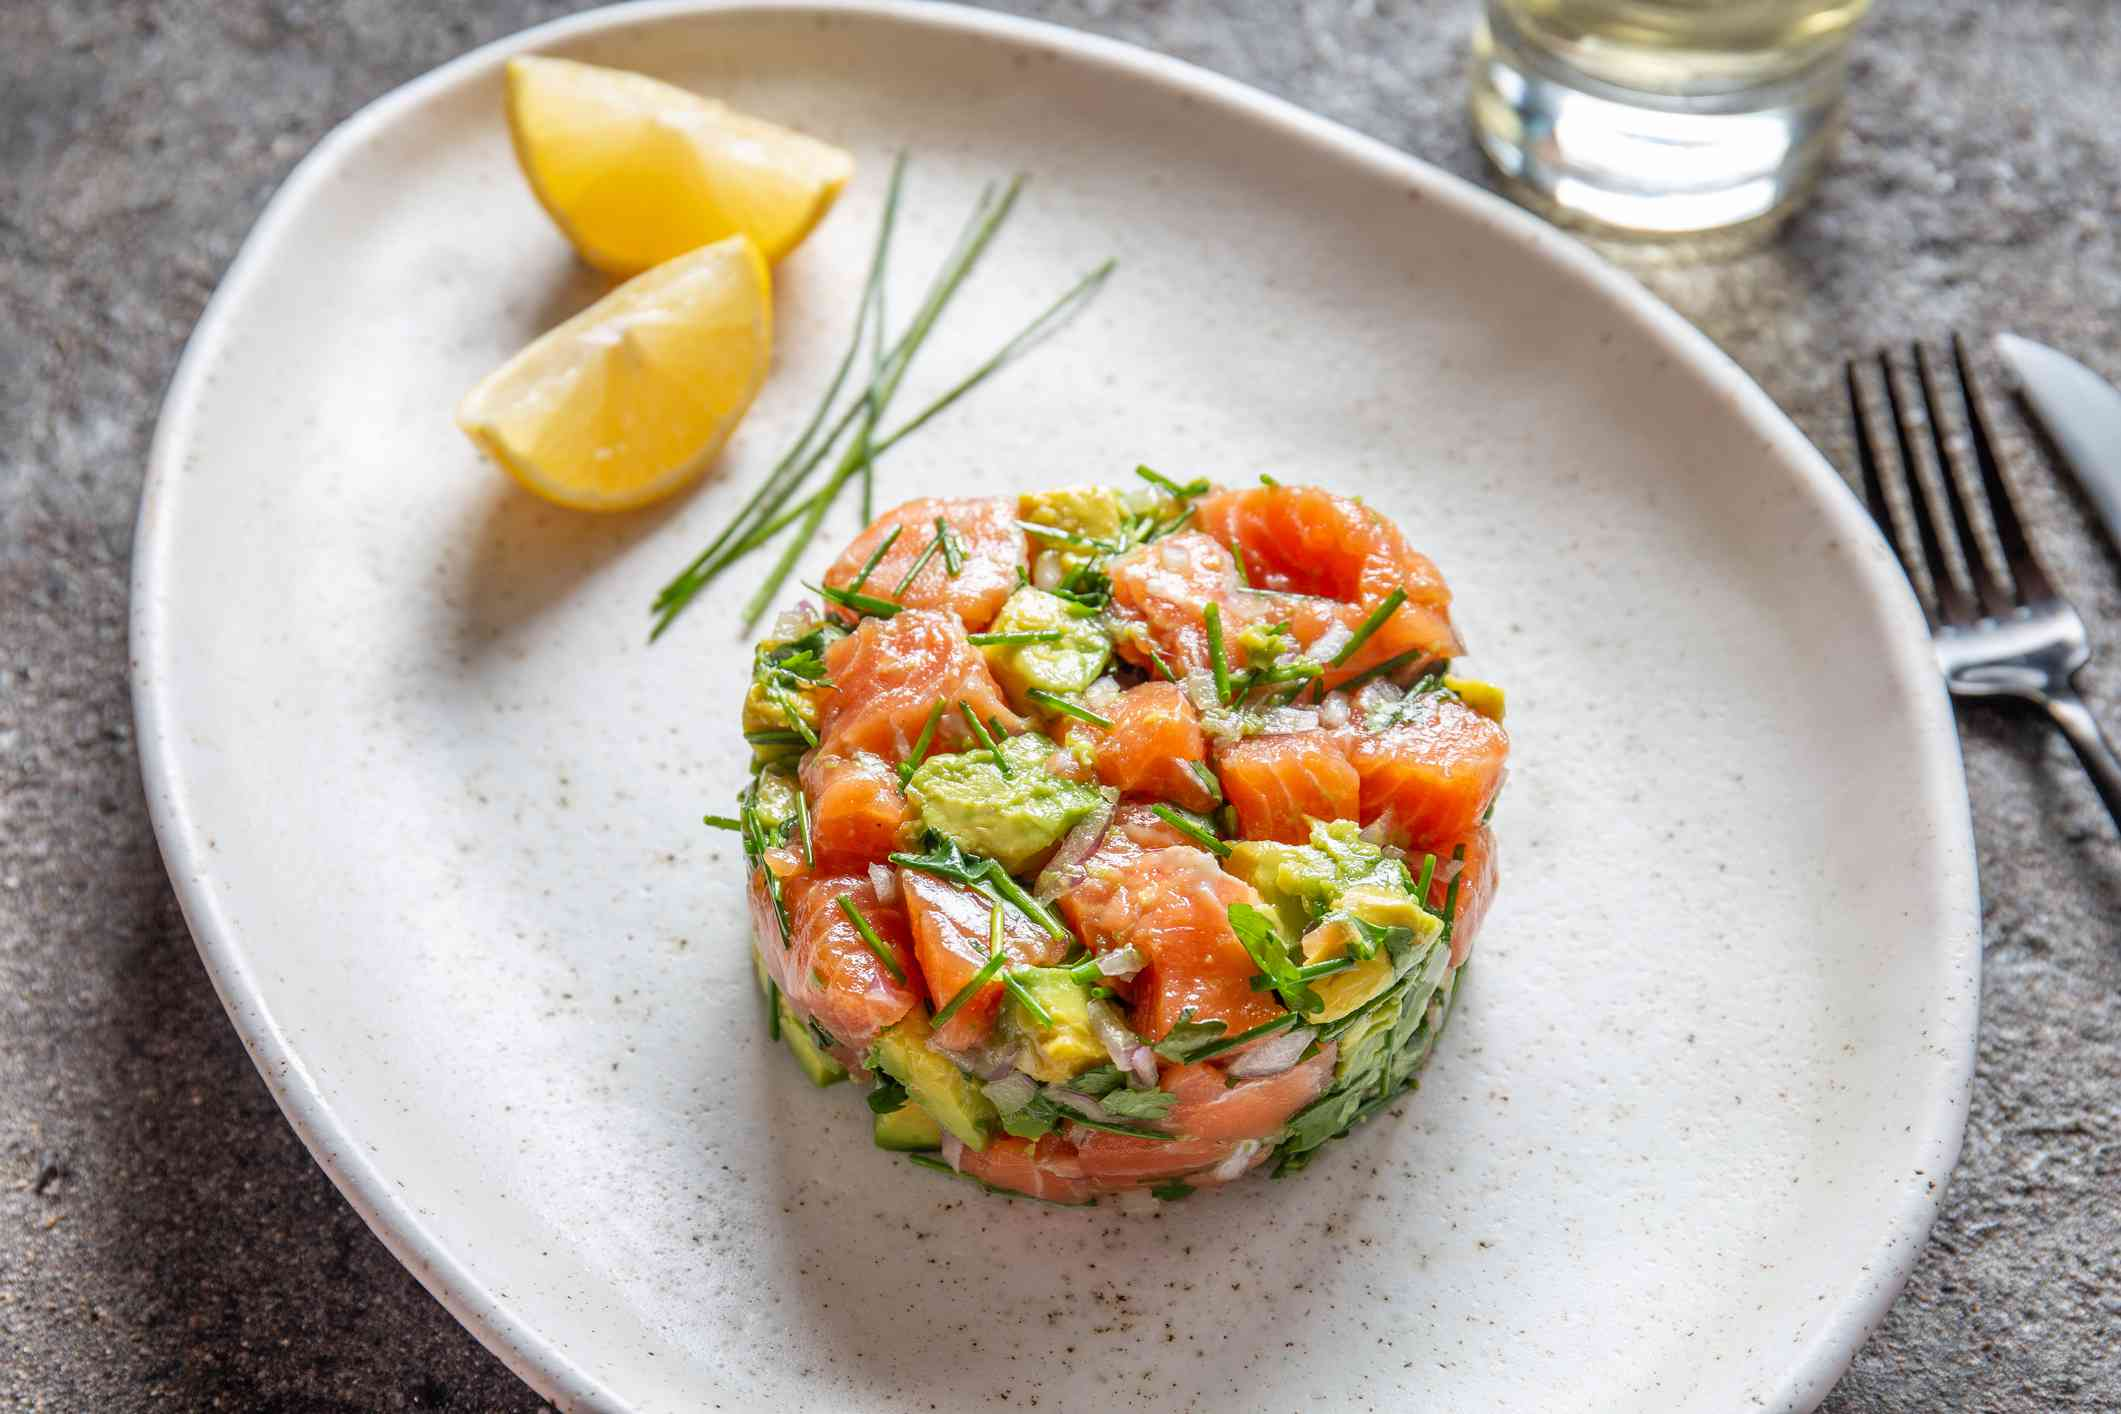 Salmon ceviche with lemon wedges